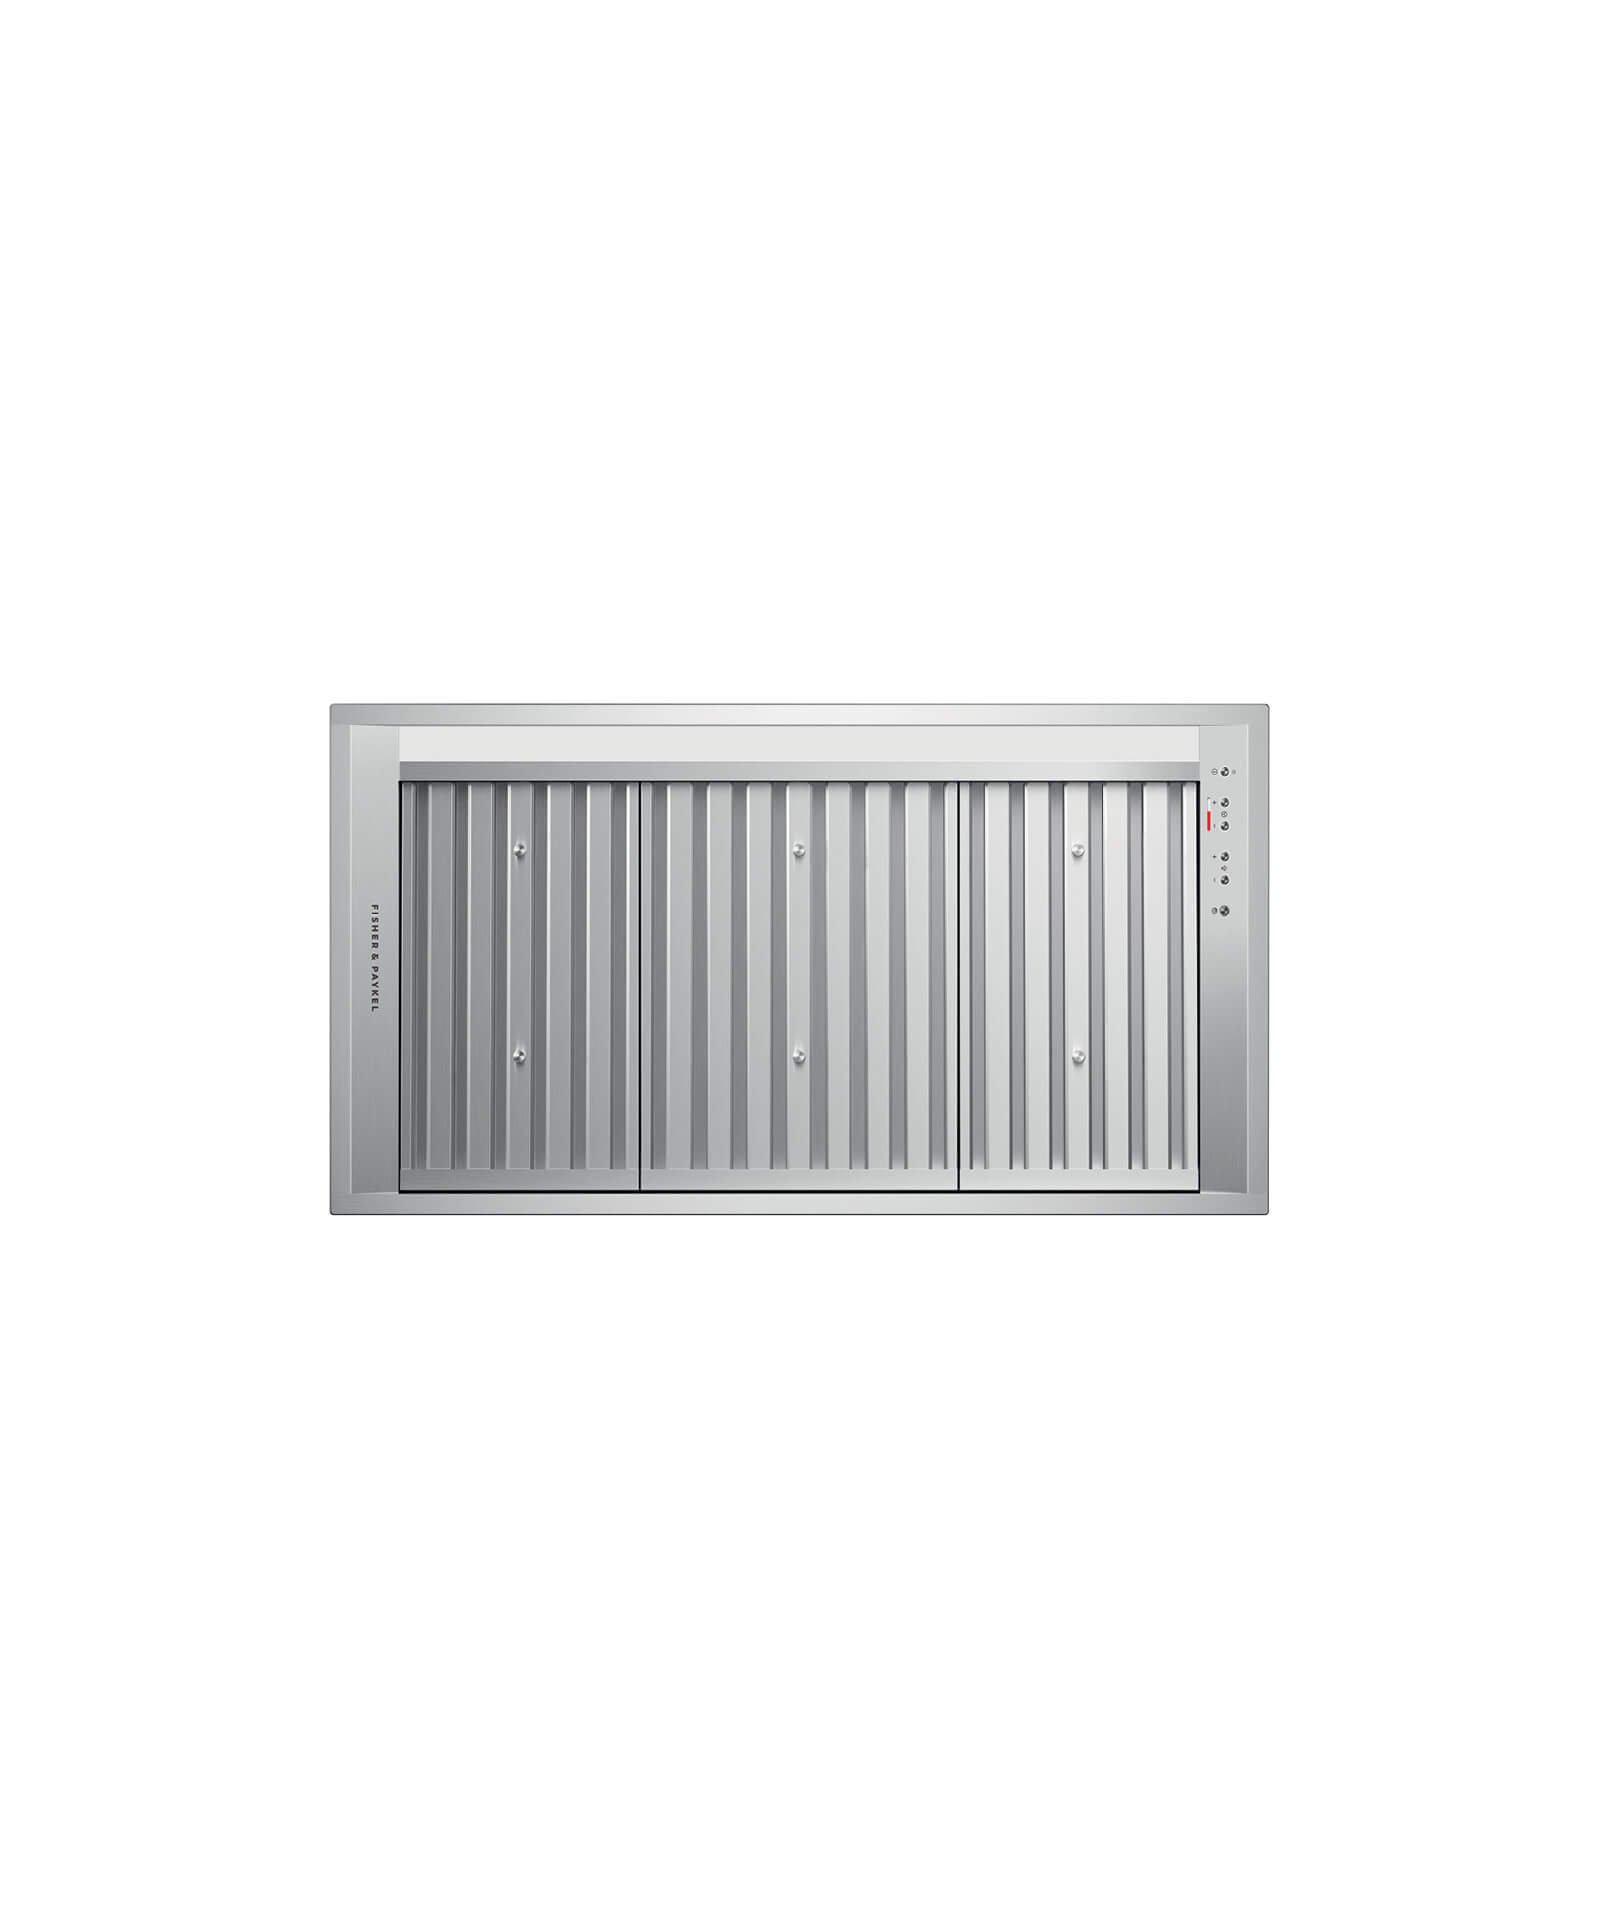 Model: HPB3619-12_N | Fisher and Paykel Insert Range Hood 36""